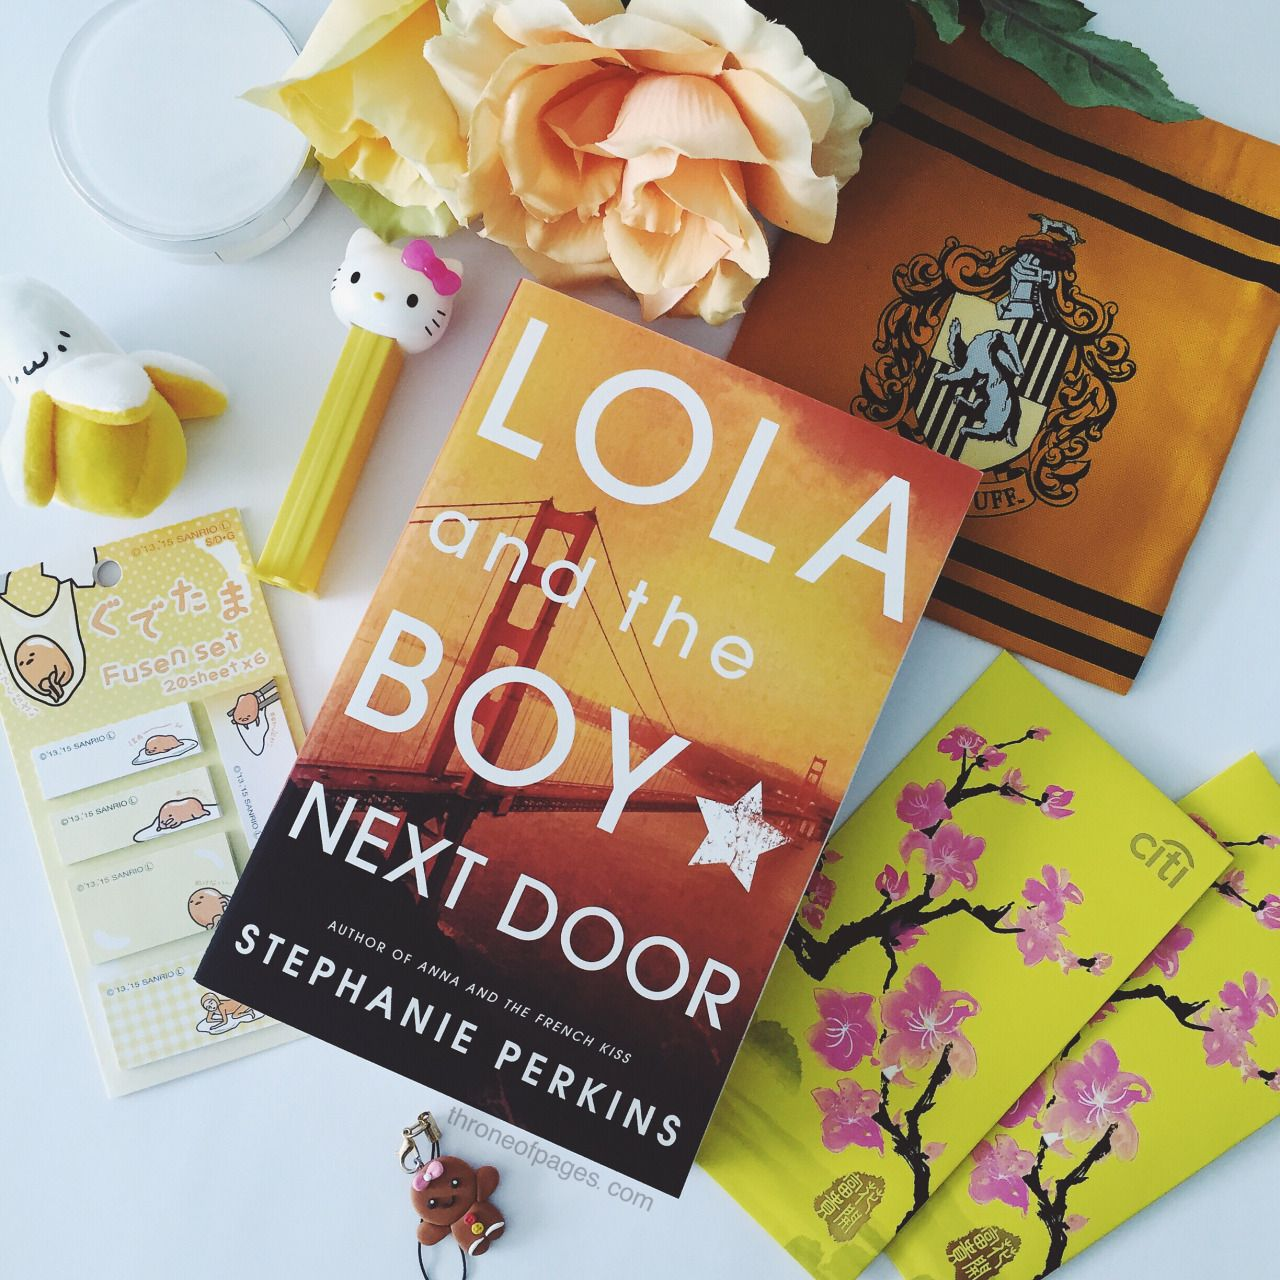 """throne-of-pages: """" Lola and the Boy Next Door 💛 Yellow book covers somehow make me feel a little happier! ☺️ """""""